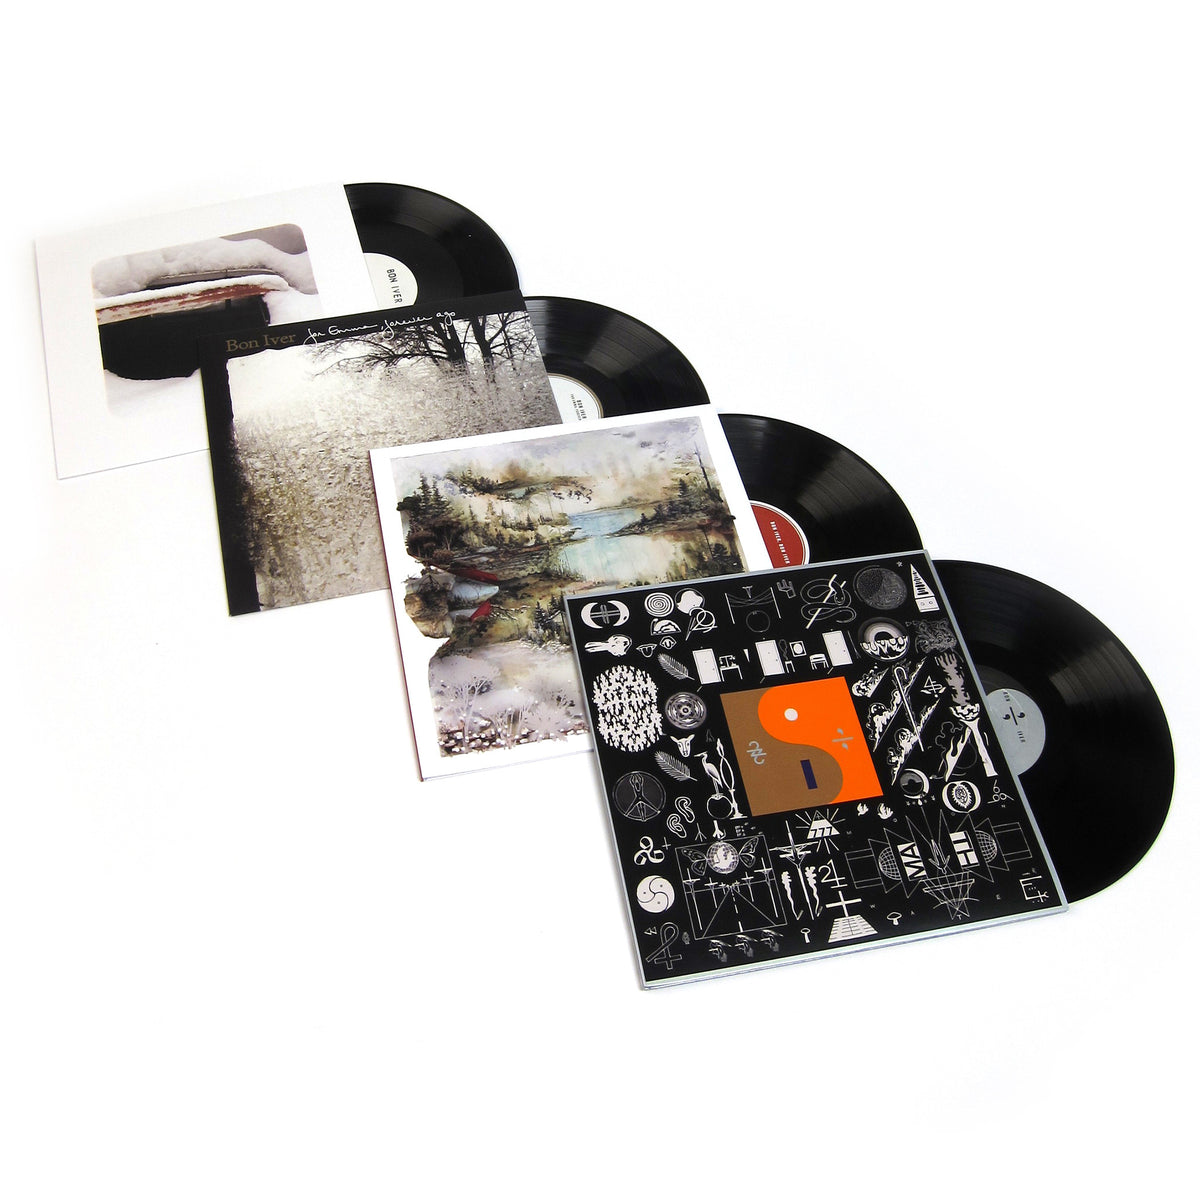 Bon Iver: Vinyl LP Album Pack (For Emma, Forever Ago, Bon Iver, 22, A Million, Blood Bank)